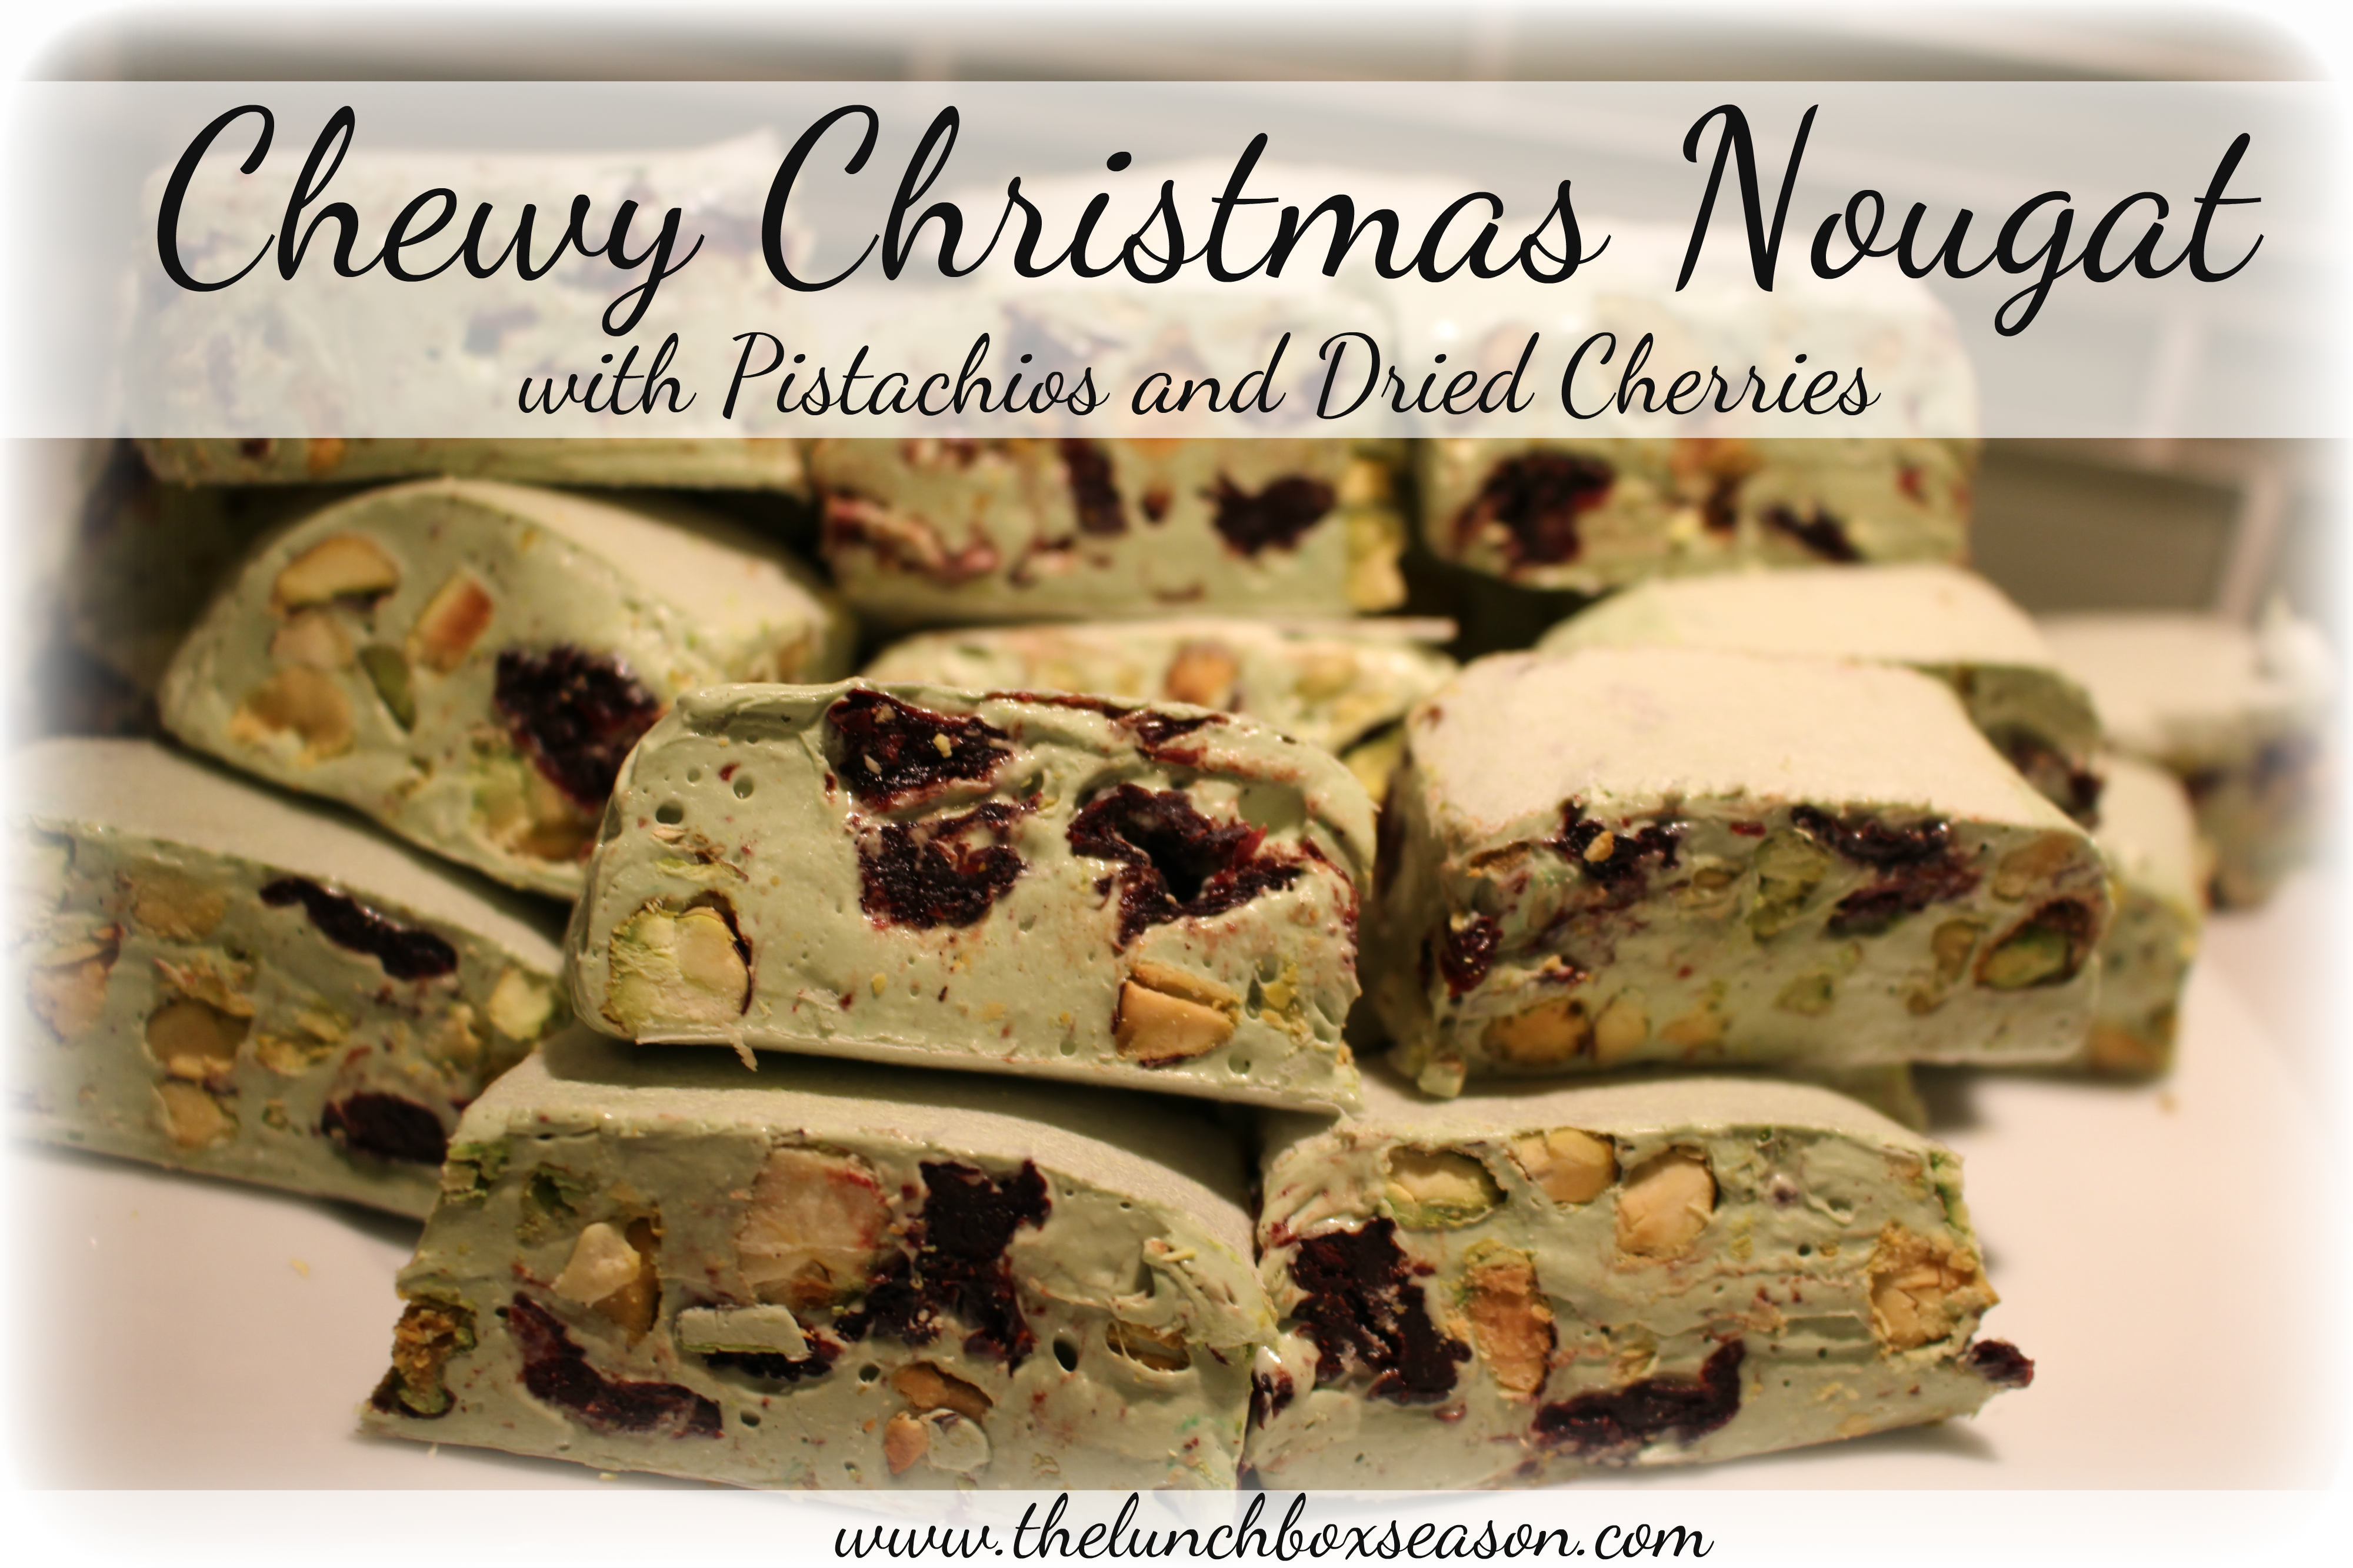 Chewy Christmas Nougat with Pistachios and Dried Cherries